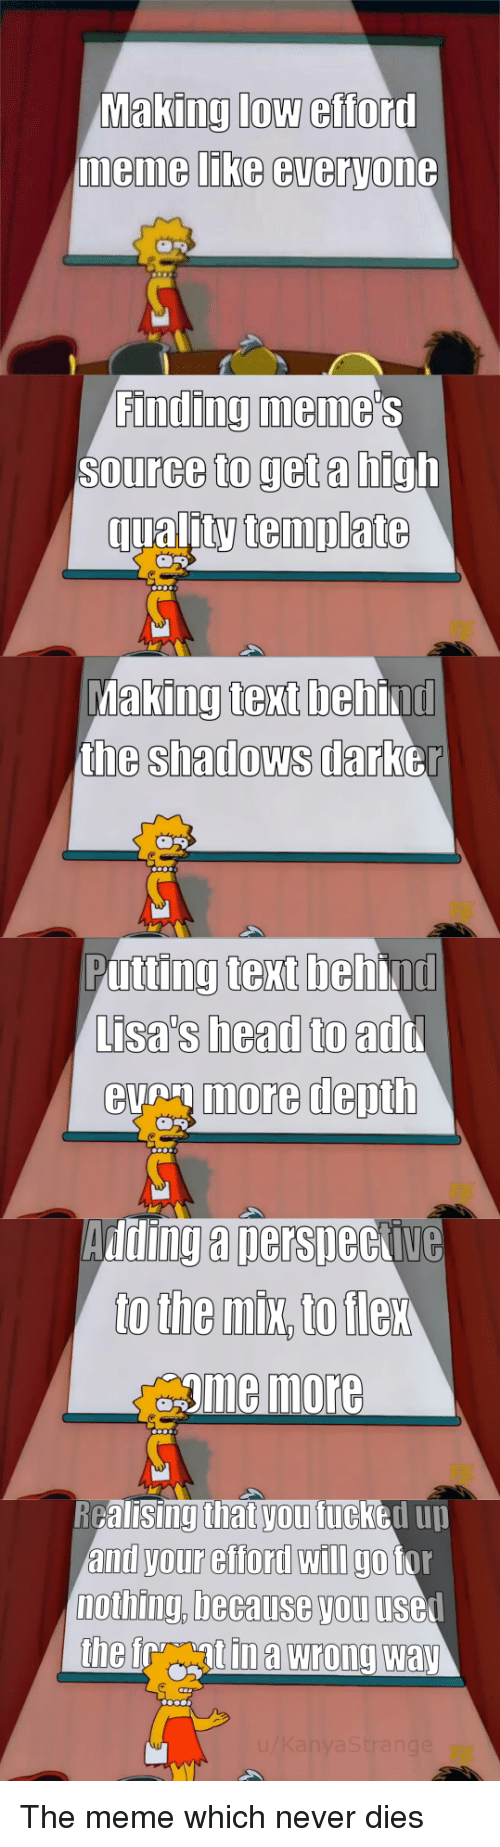 Head, Meme, and Text: Making low efford  memme LIKe everyone  Finding meme  Source to get a high  qualitytemplate  king text beh  the shadows darb  Ma  ind  er  Putting text behind  Lisa's head to  eumore depth  add  Adding a nersneckive  gme more  RGalisingthat vou fucked uu  and your efford wIlI go tor  nothing, because you usel The meme which never dies